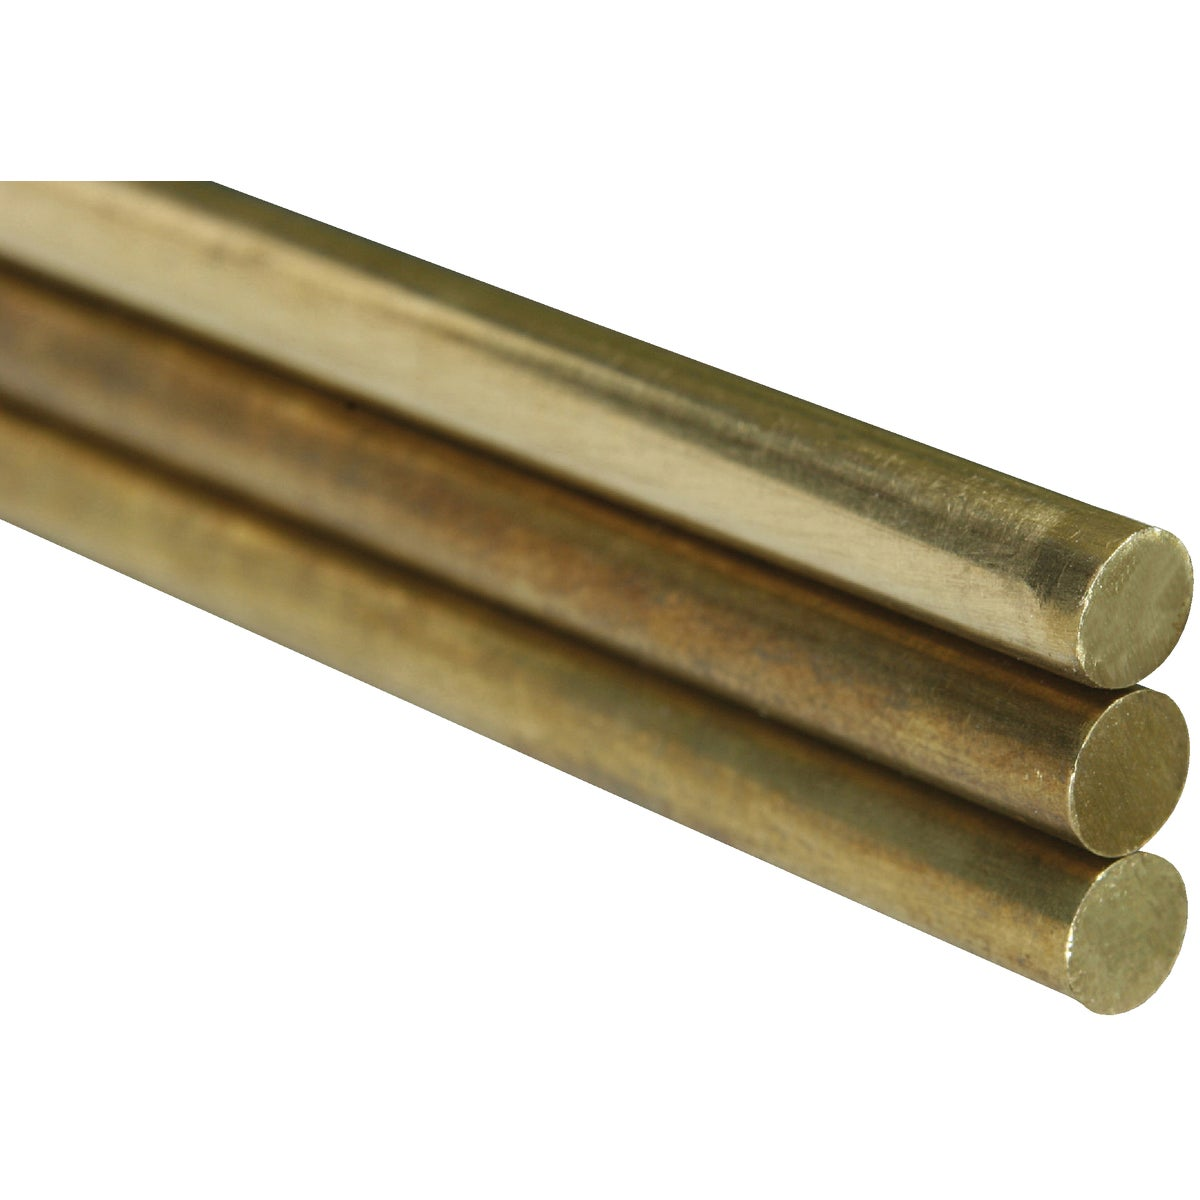 1/16X36 SOLID BRASS ROD - 1160 by K&s Precision Metals